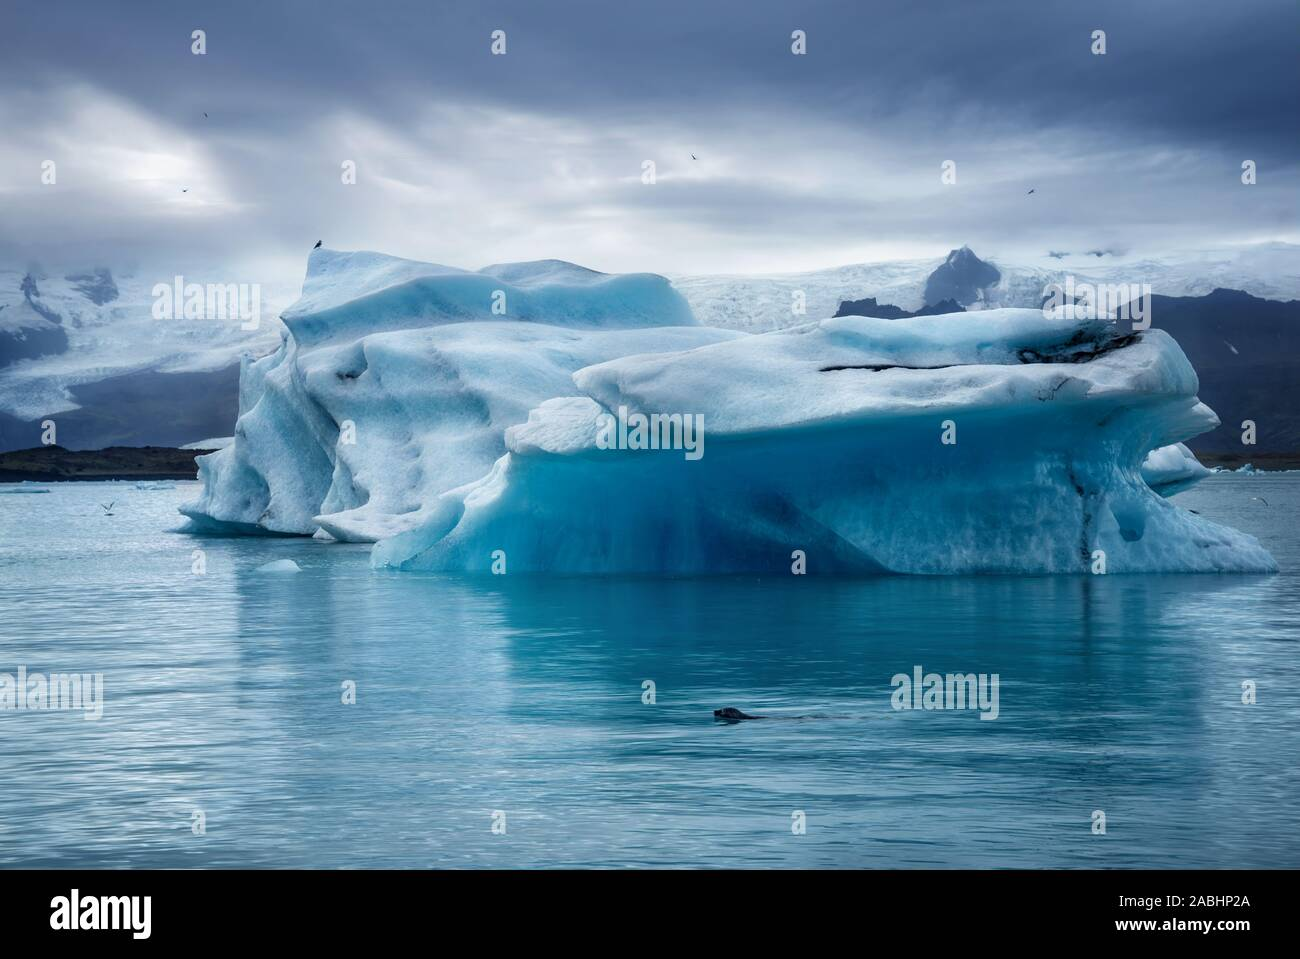 dark low key image of seal swimming in Jokulsarlon glacier lagoon at sunset on cloudy winter day with blue iceberg in background Stock Photo